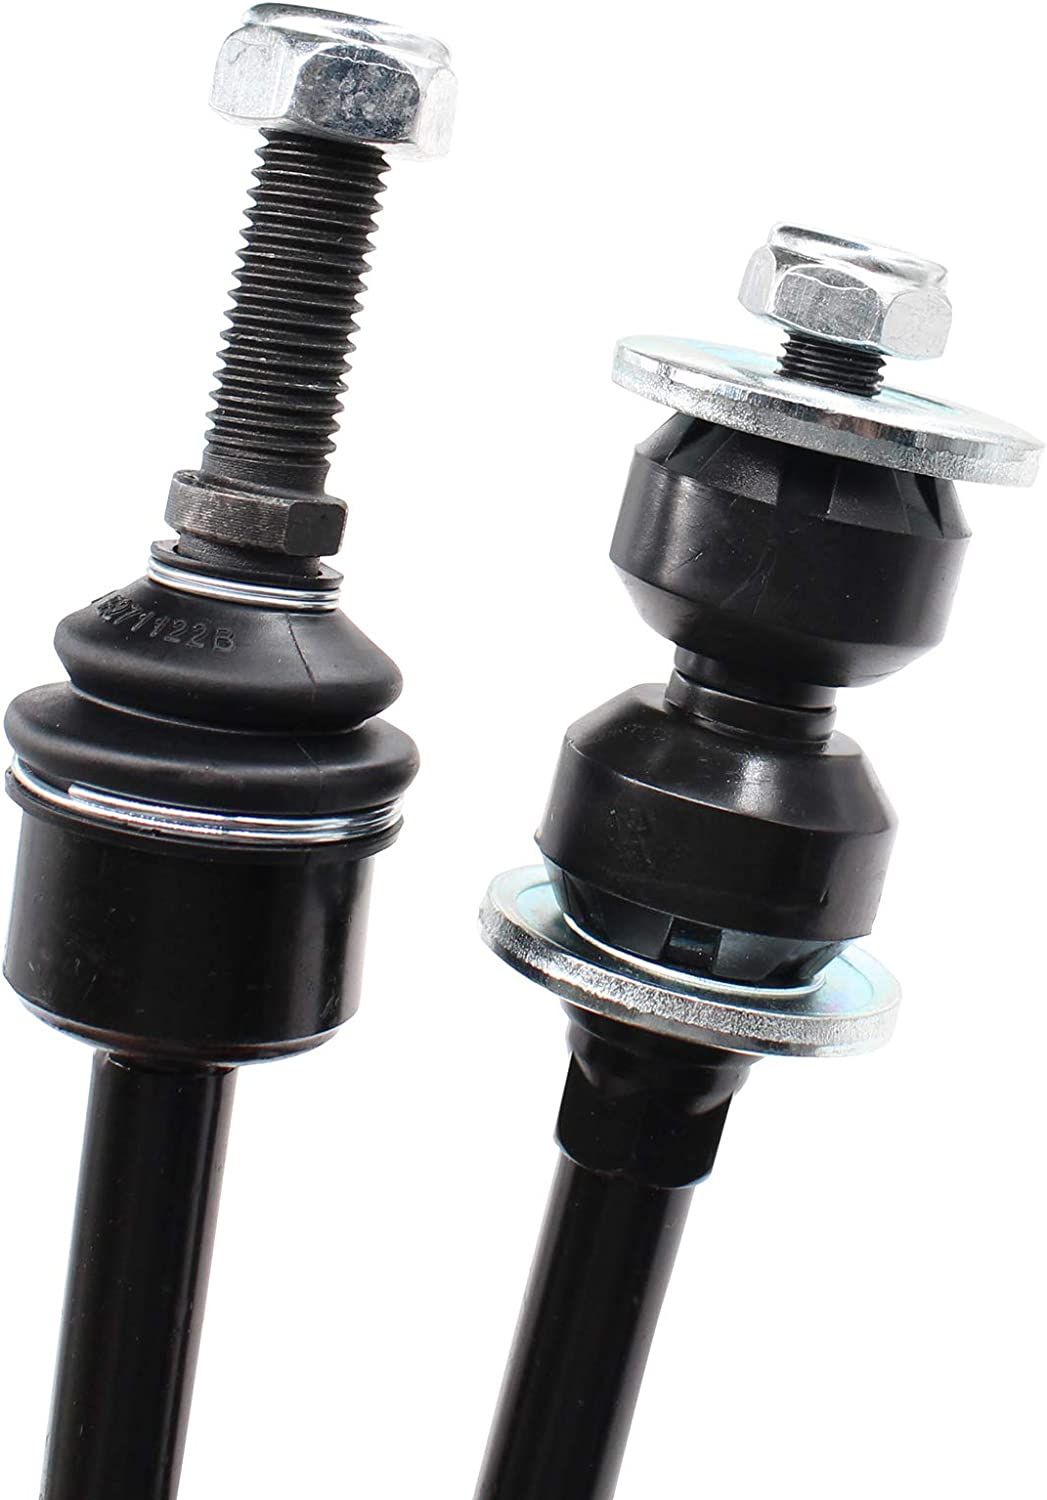 XtremeAmazing Front Sway Bar Stabilizer End Links Suspension Kit Set of 2